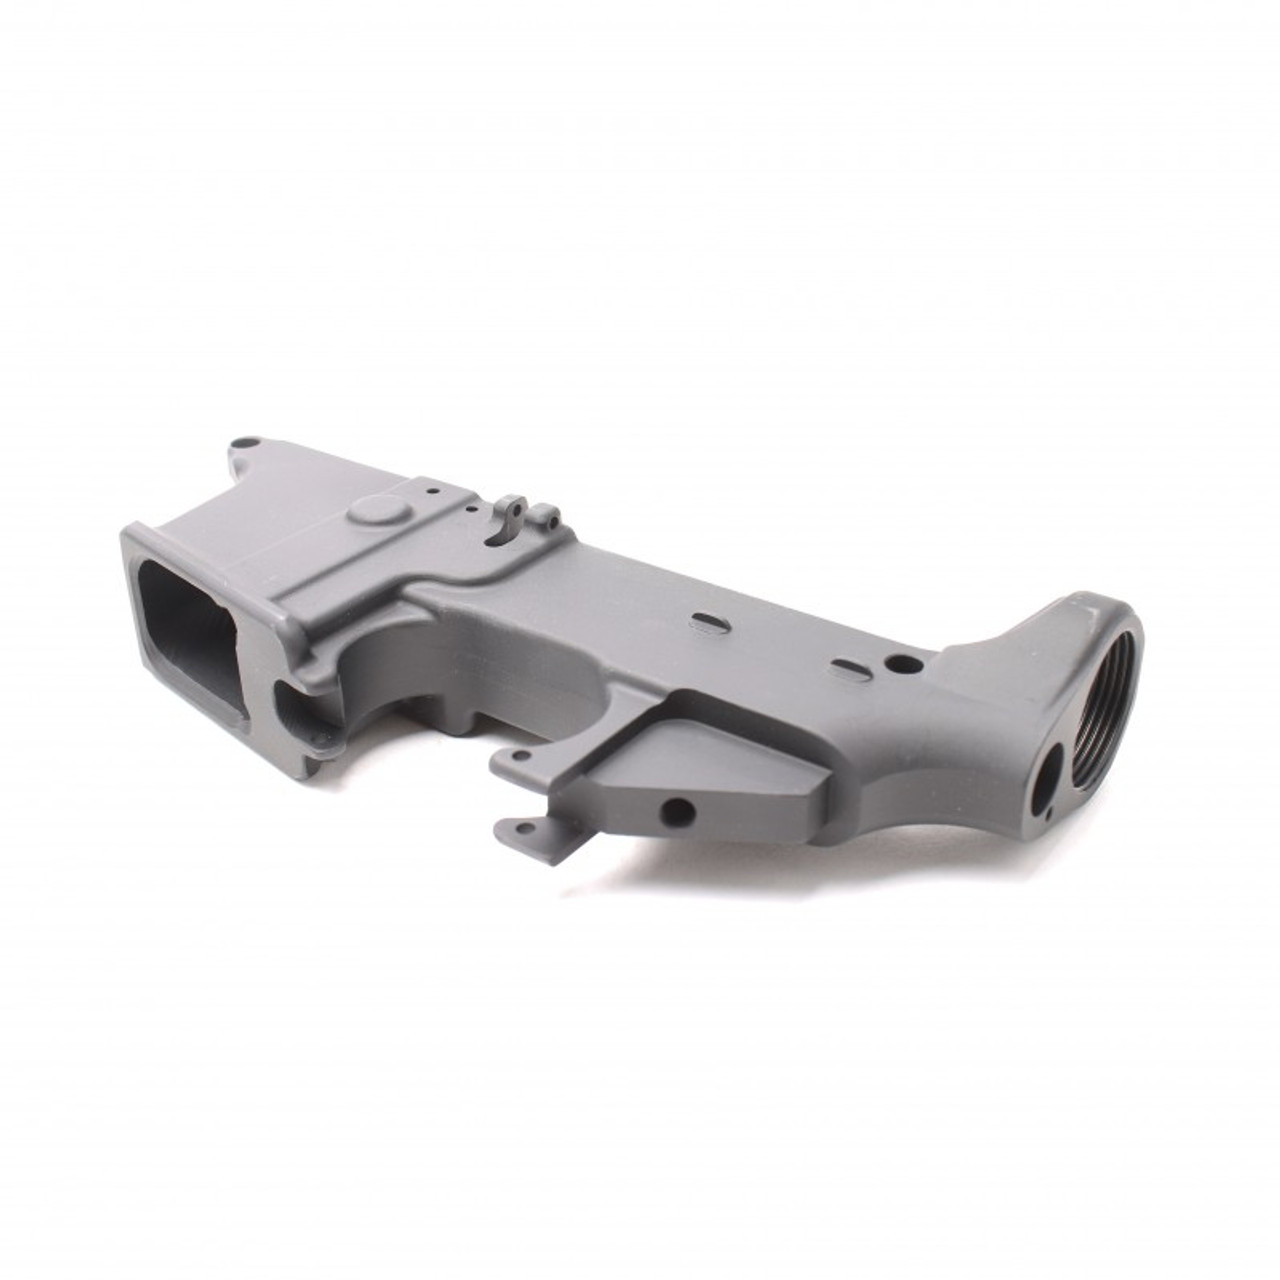 MDX Arms AR9 80% Anodized Lower Receiver Anodized - Glock Base